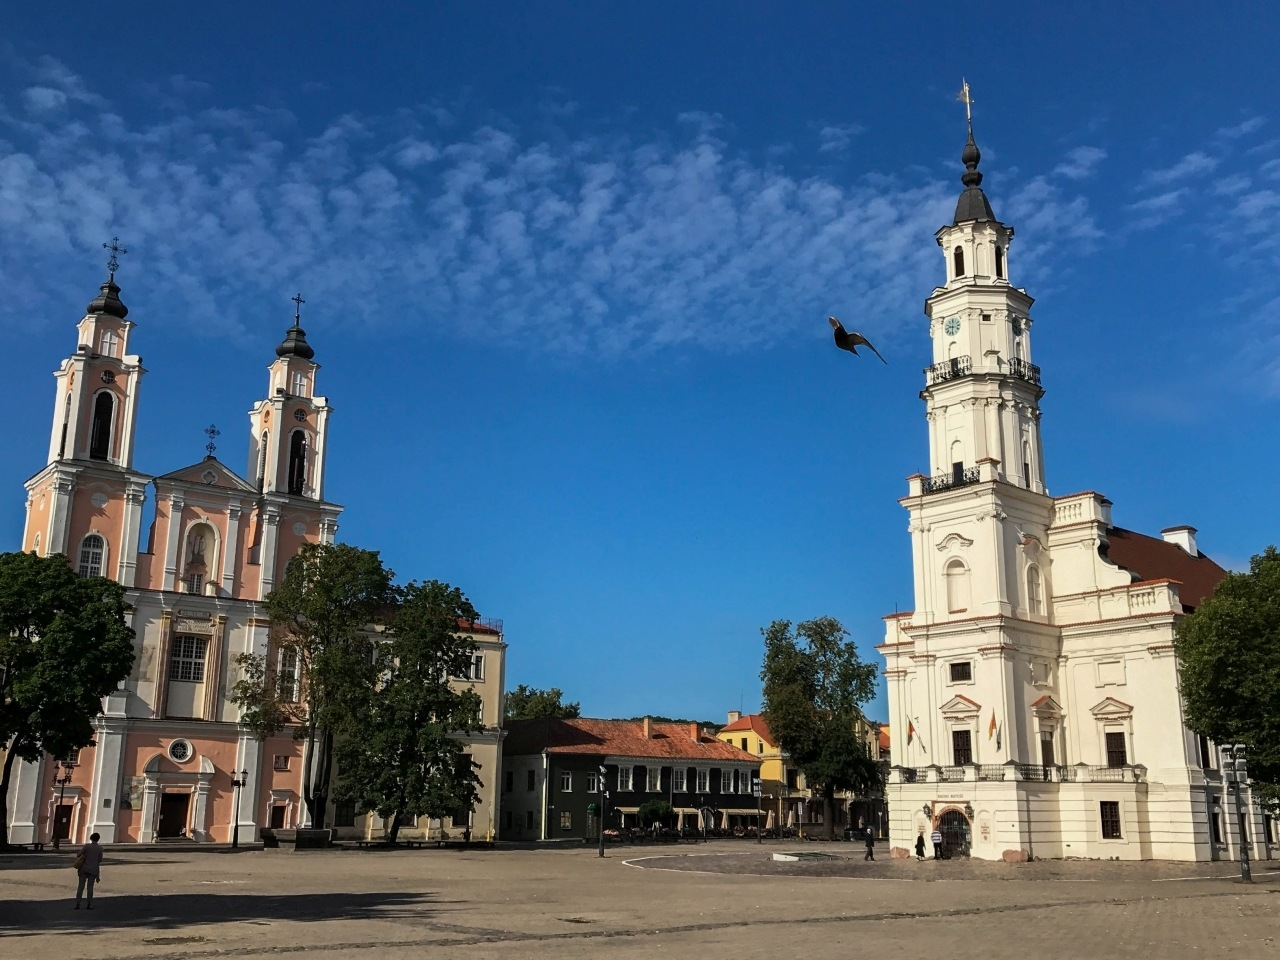 Town Hall in Kaunas Lithuania is one of the main things to do